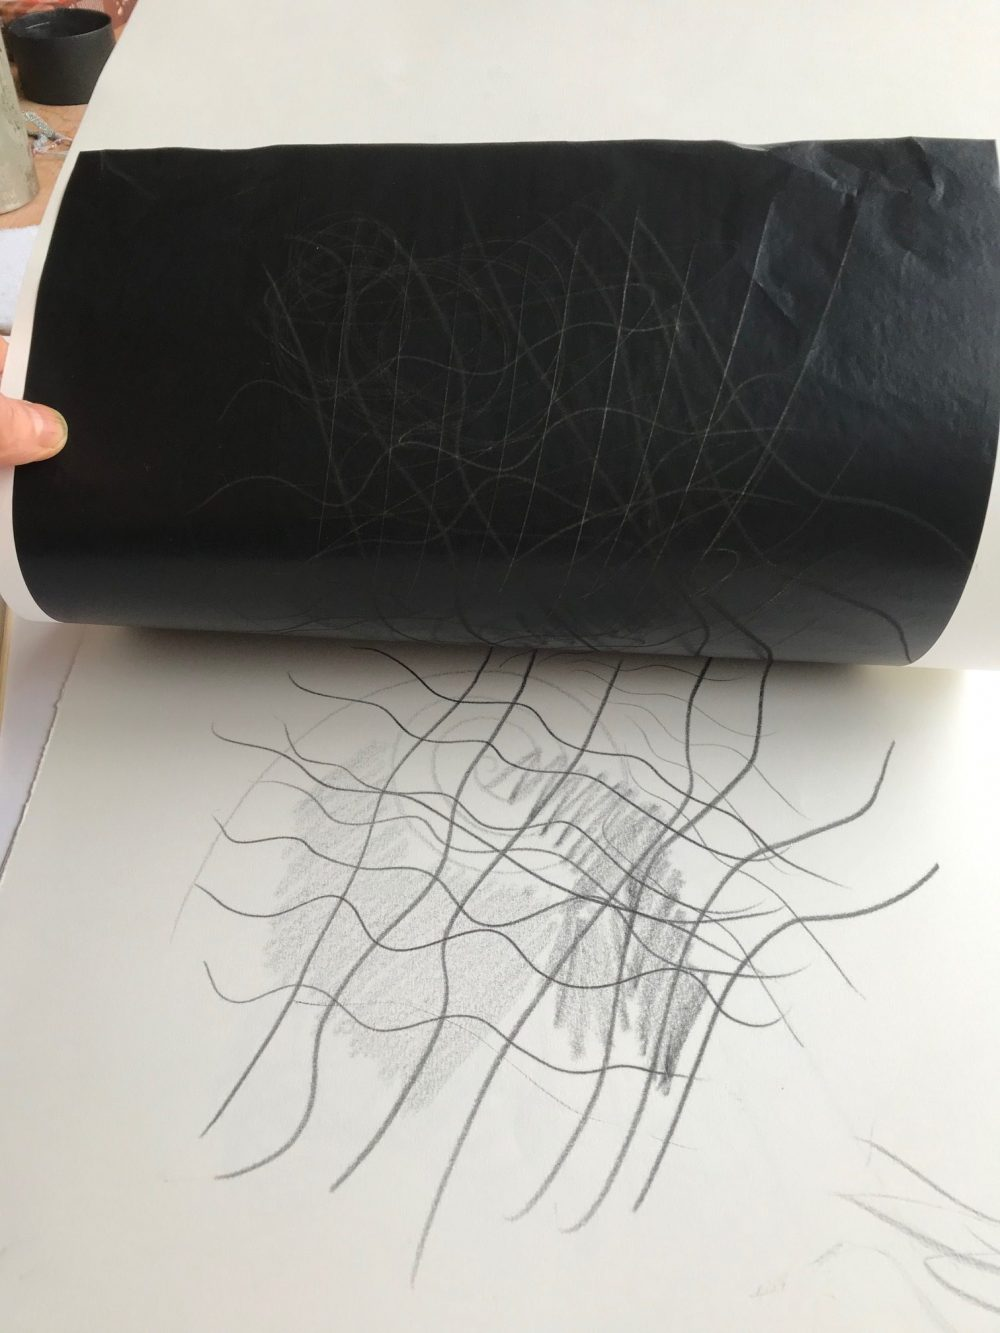 Scribble marks using carbon paper